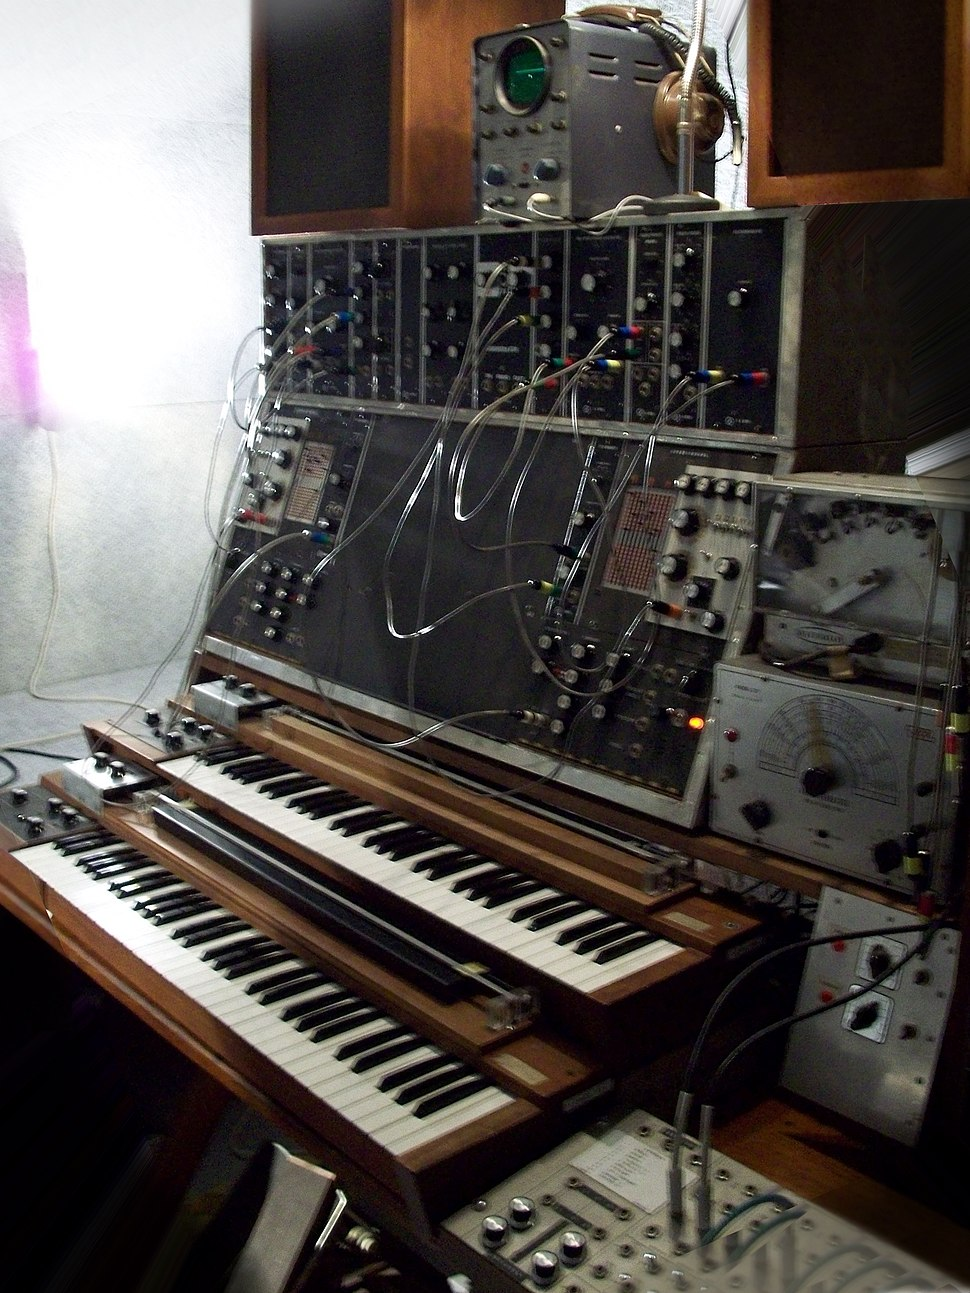 Max Brand Synthesizer (1957-67) vertical